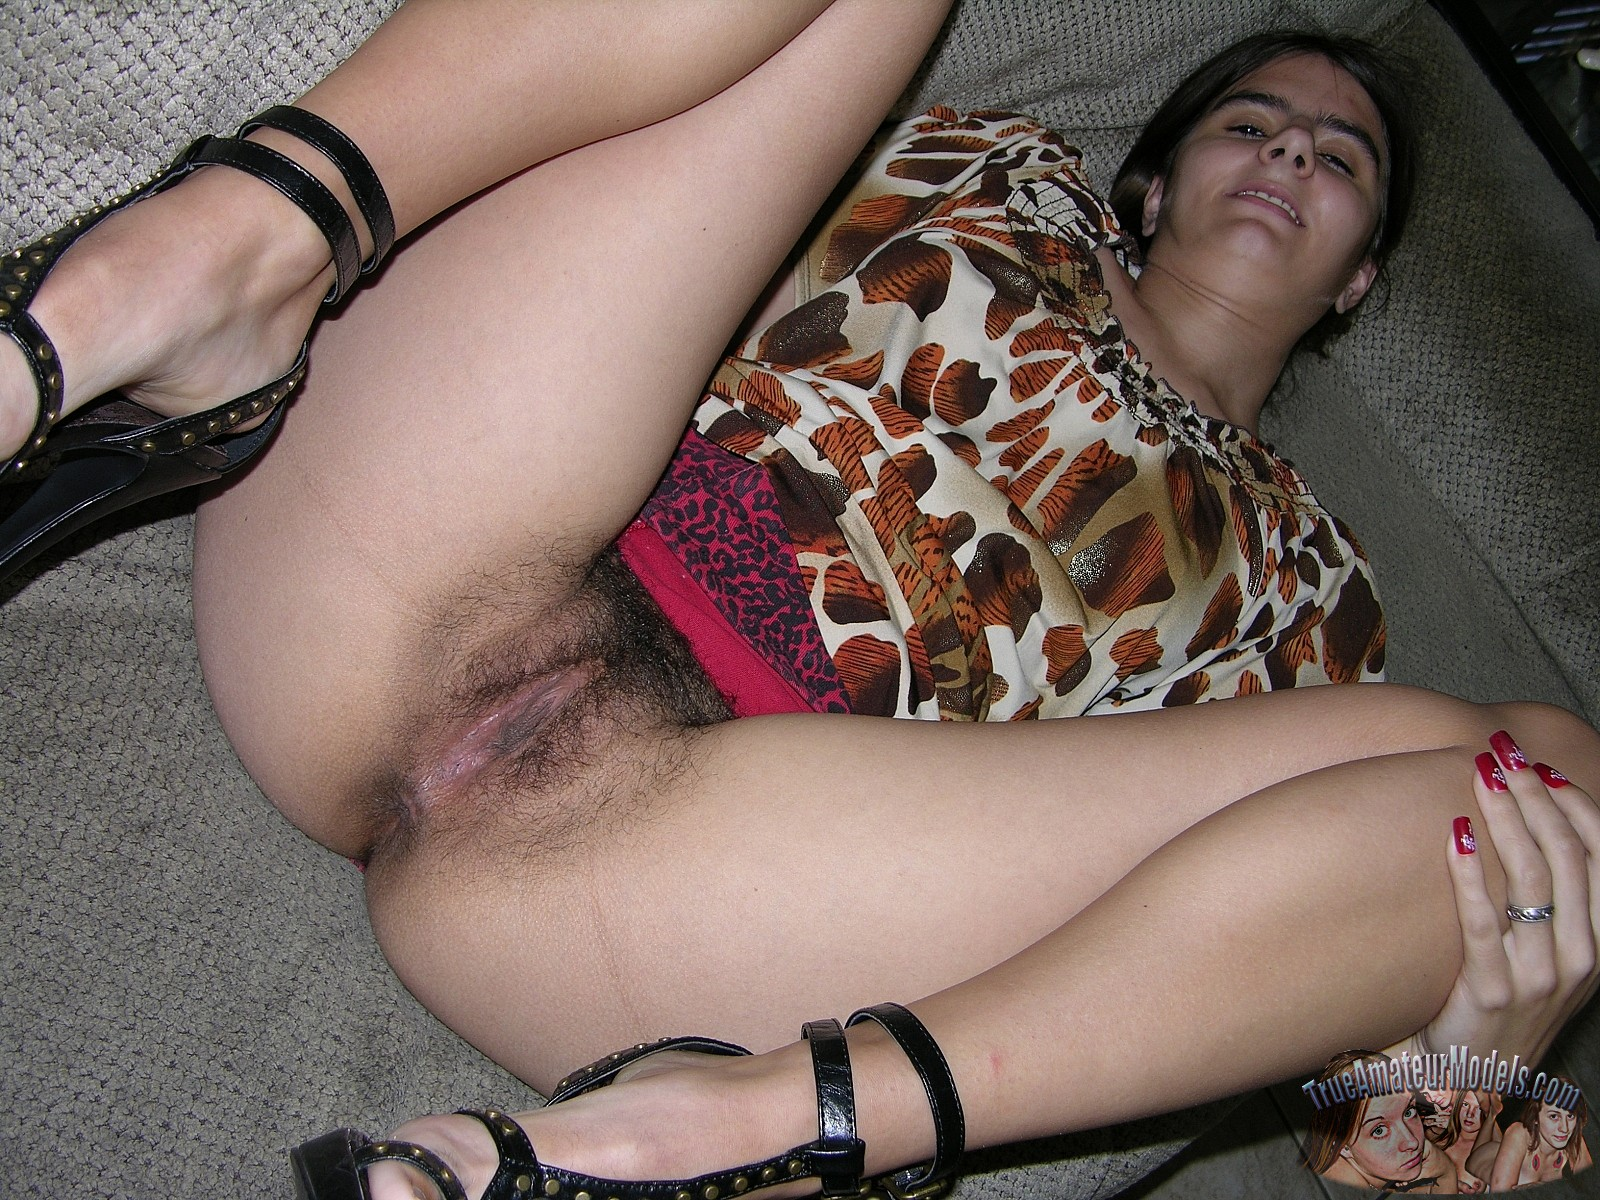 indian hairy pussy Shared by True_Amateurs - Upskirt Indian Hairy Pussy